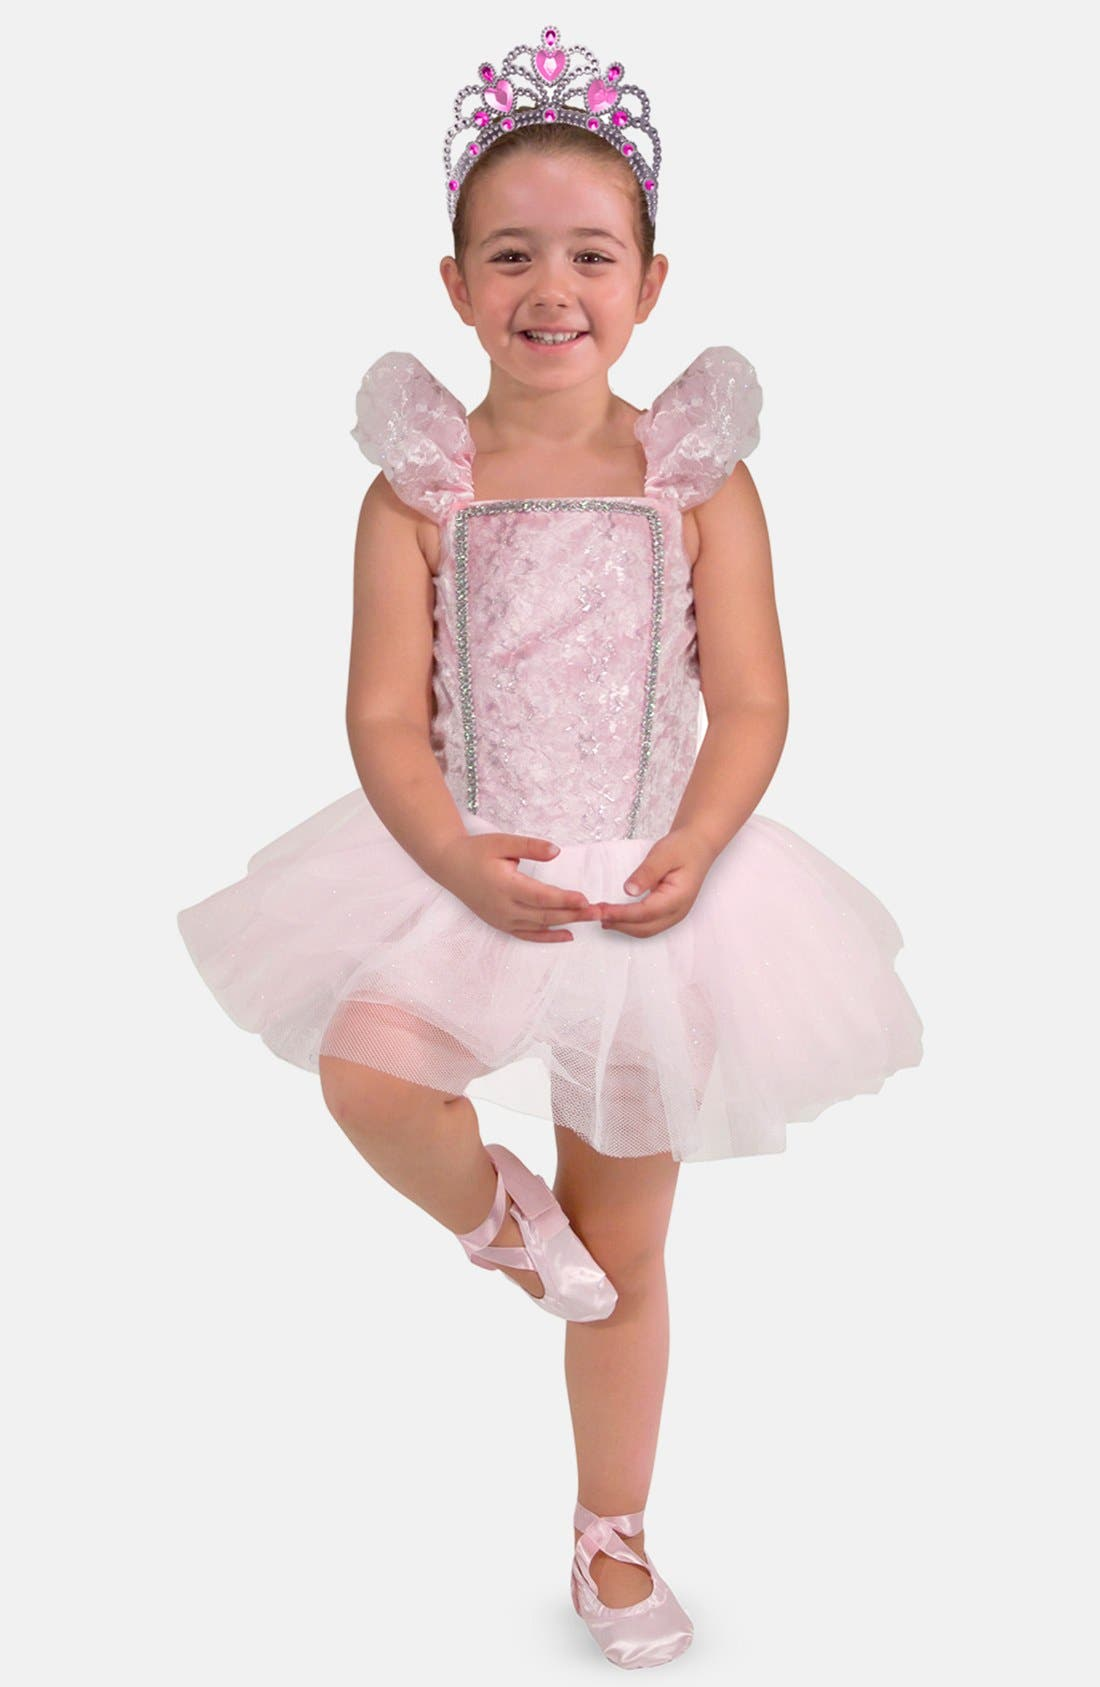 Main Image - Melissa & Doug Ballerina Role Play Set (Little Girls)